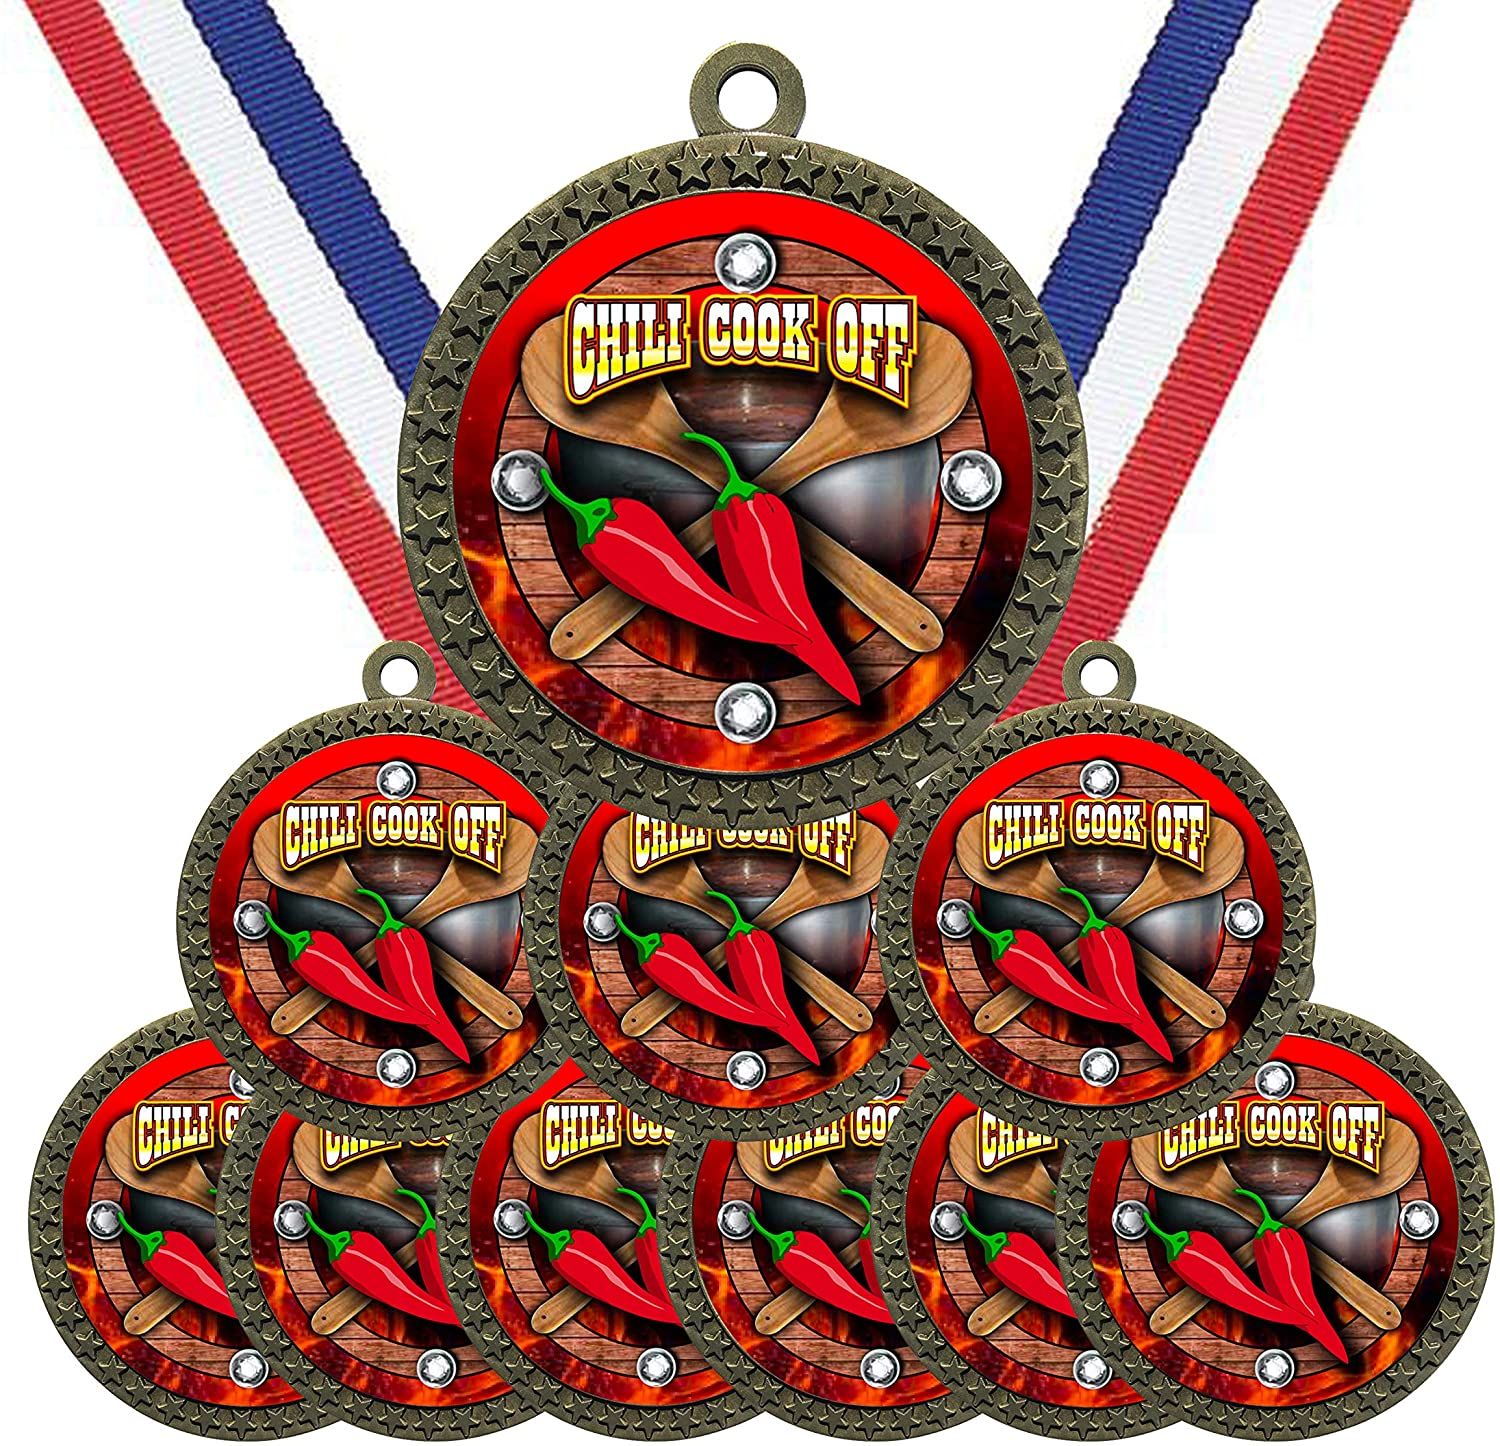 Large 2-1/2 inch Diameter Metal Antique Gold Chili Cook Off Contest Medals Star Award Trophy Champion Winner with Red White and Blue Neck Ribbons (Pack of 10)